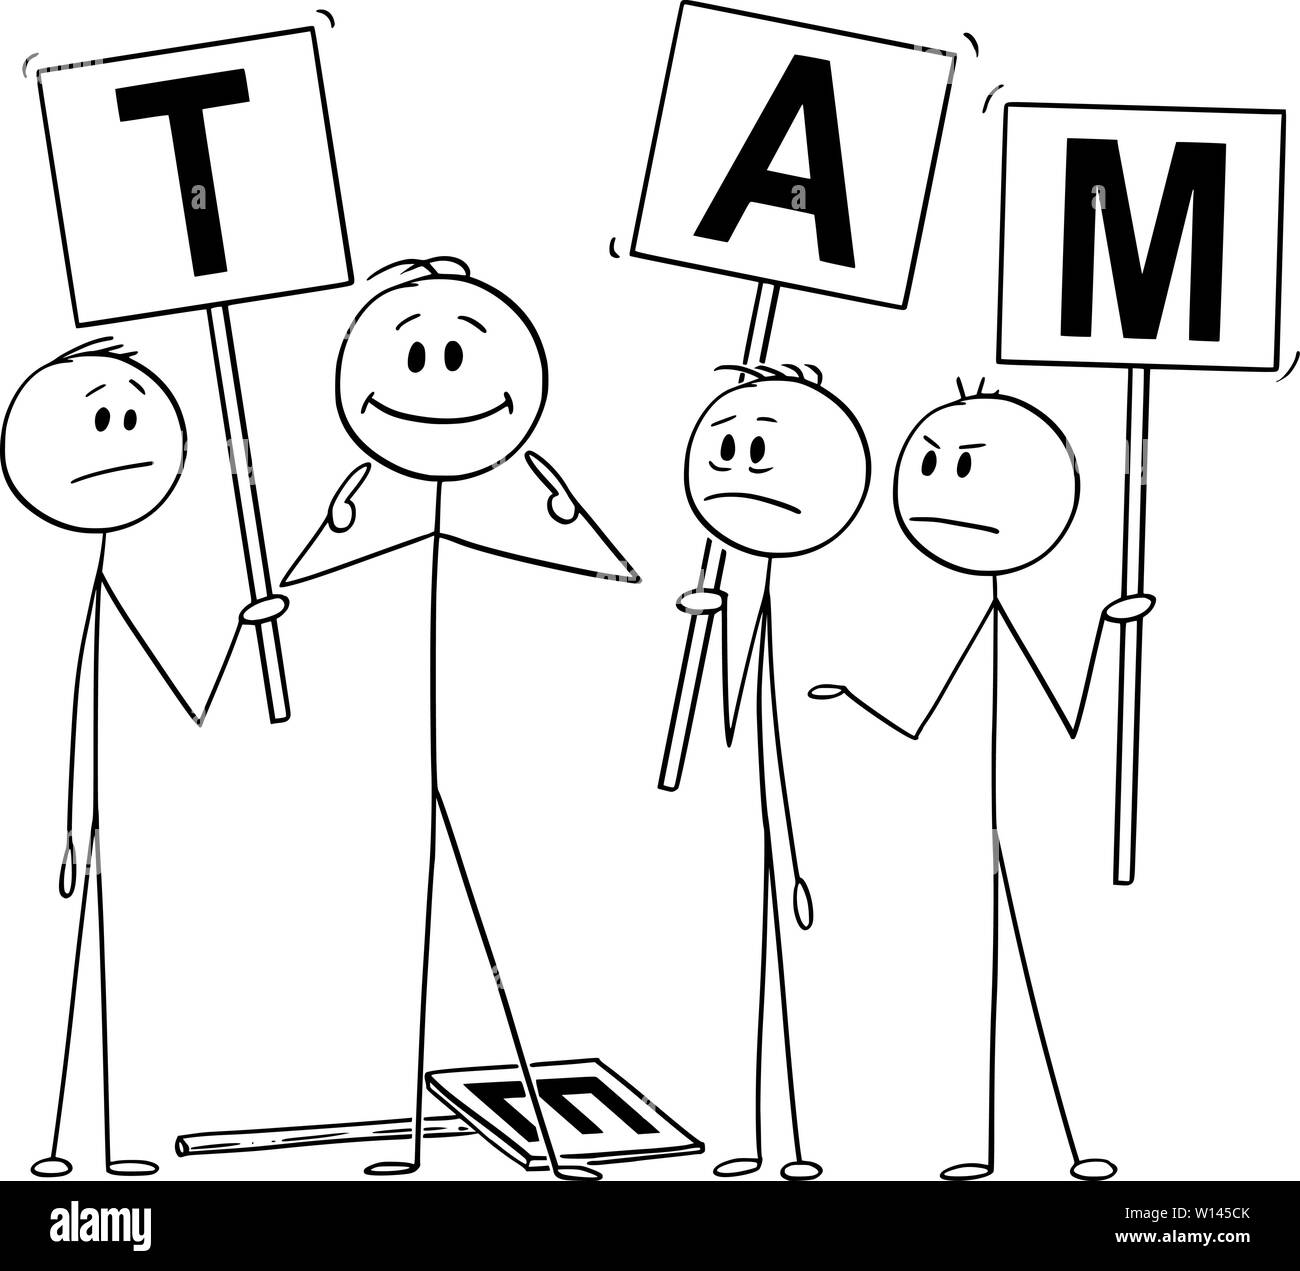 Vector Cartoon Stick Figure Drawing Conceptual Illustration Of Man Or Businessman Pointing On Yourself As The Best Part Of The Team Business Concept Of Arrogance Individuality And Egoism Stock Vector Image